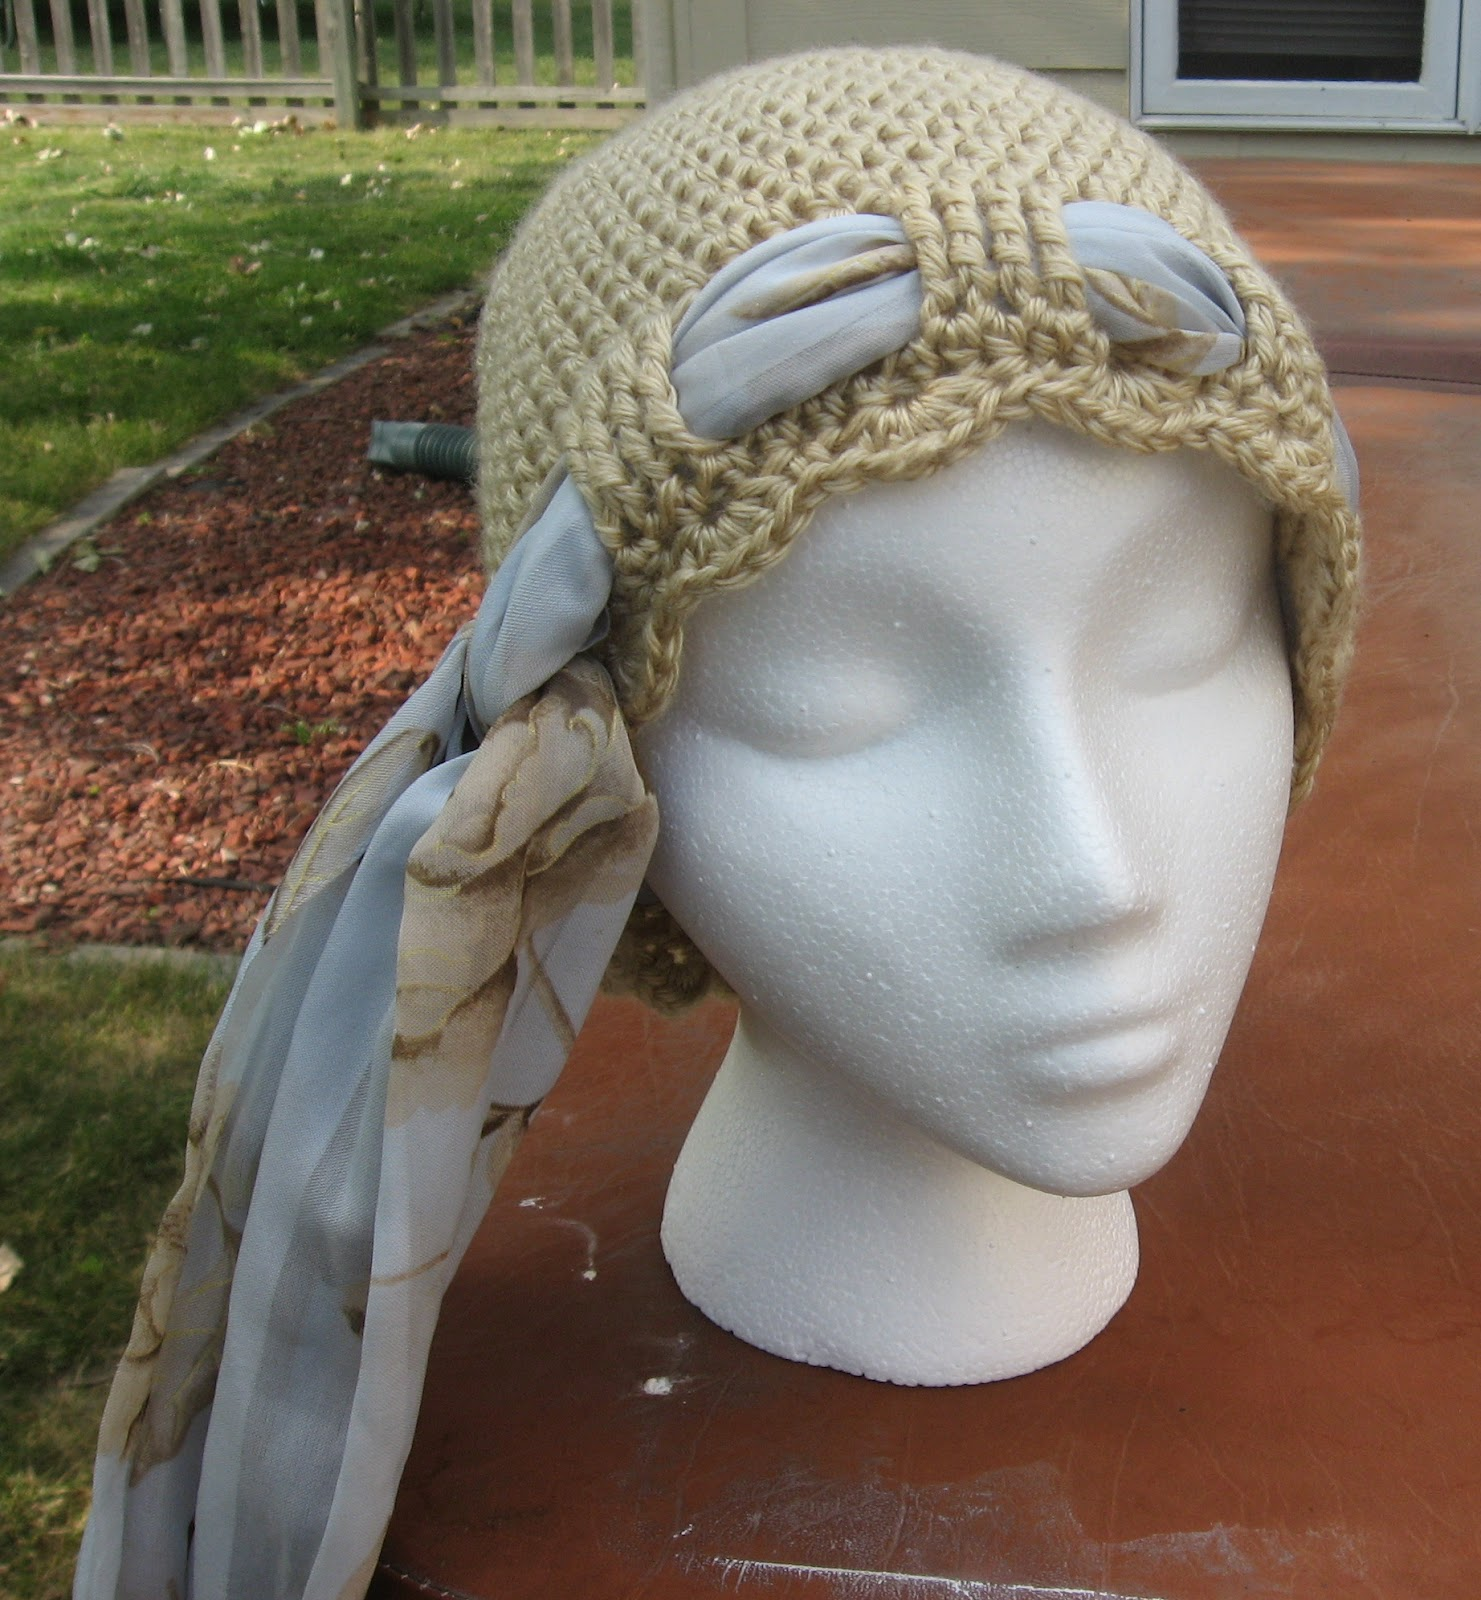 First is the Crochet Chemo Cap with Tie Scarf .